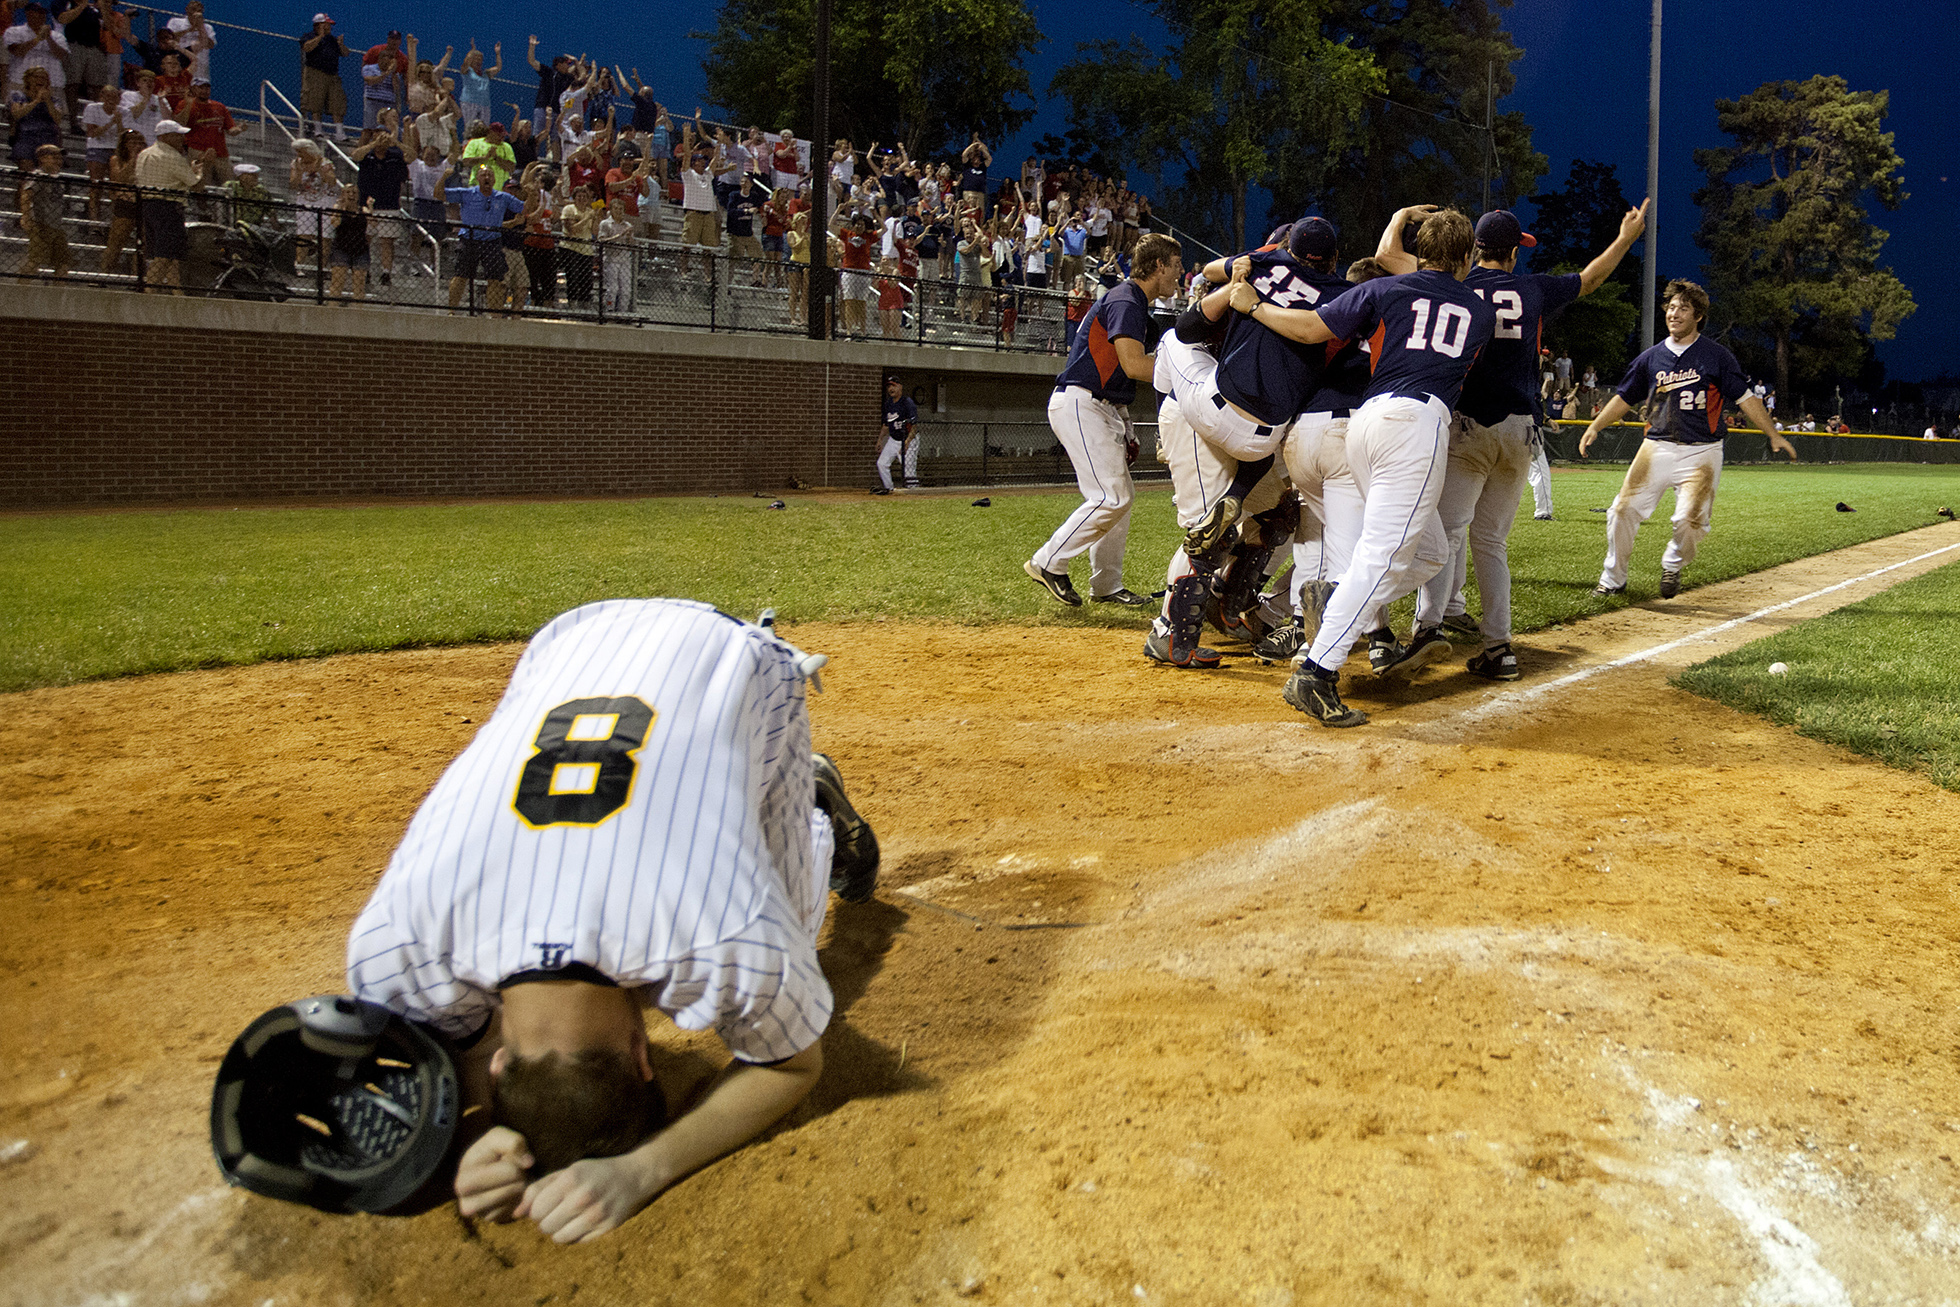 Jasper's Dane Giesler lumped to the ground after being thrown out at home plate for the final out of the Class 3A sectional championship at Ruxer Field in Jasper. That was the cue to celebrate for Heritage Hills, which hung on to win 4-3 and claim its first sectional title since 1997.